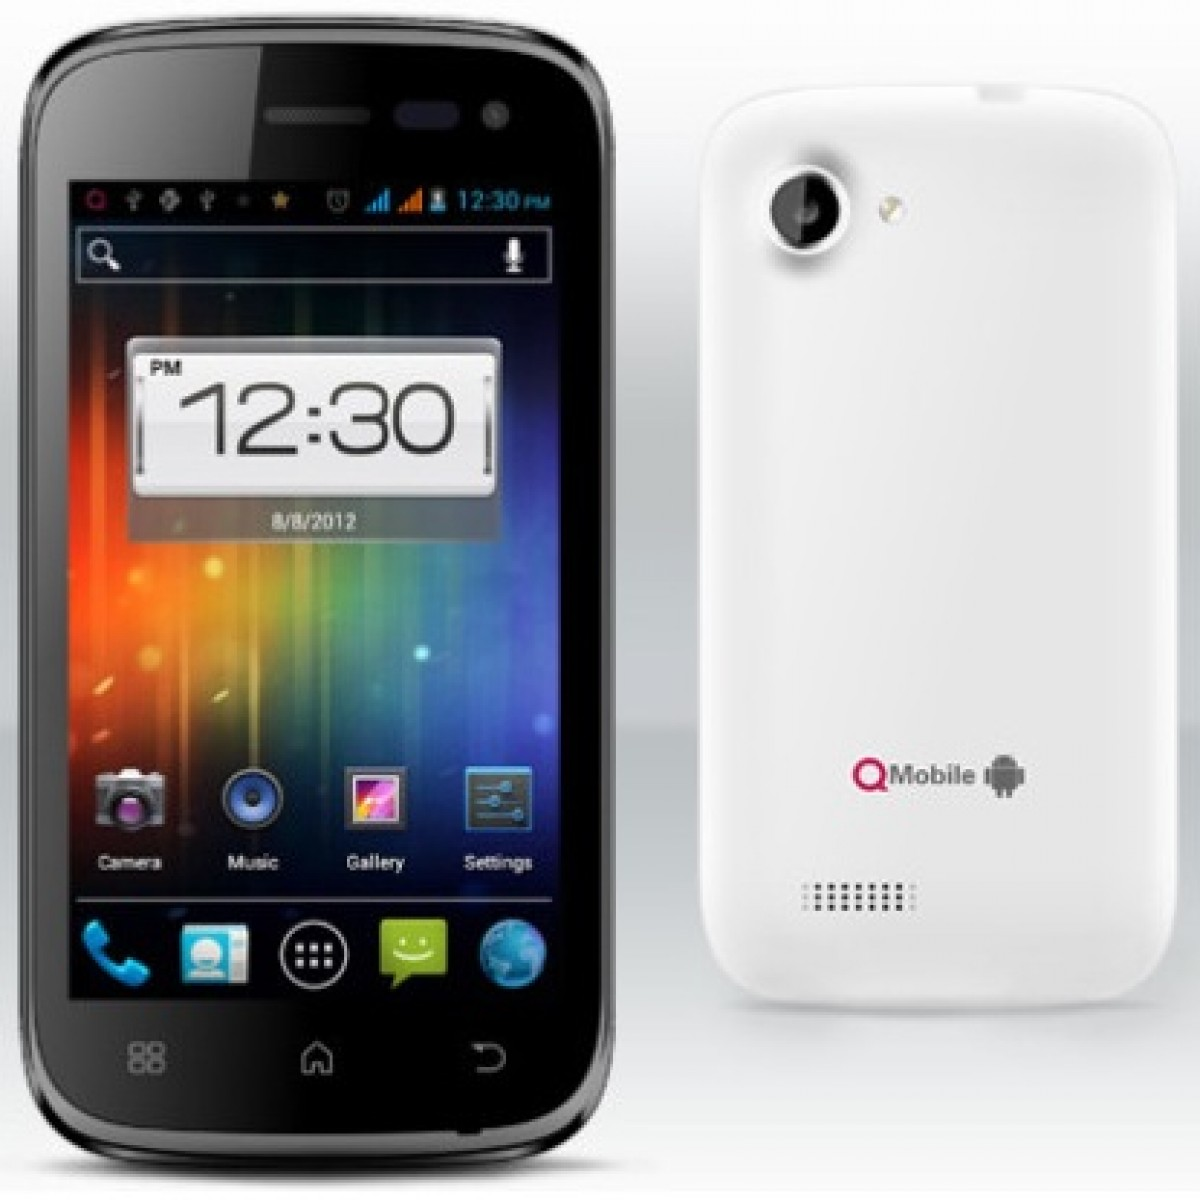 Qmobile A6 Mobiles Cell Phone Mobile Phone Qmobile Mobiles All Qmobile Mobiles Mobile